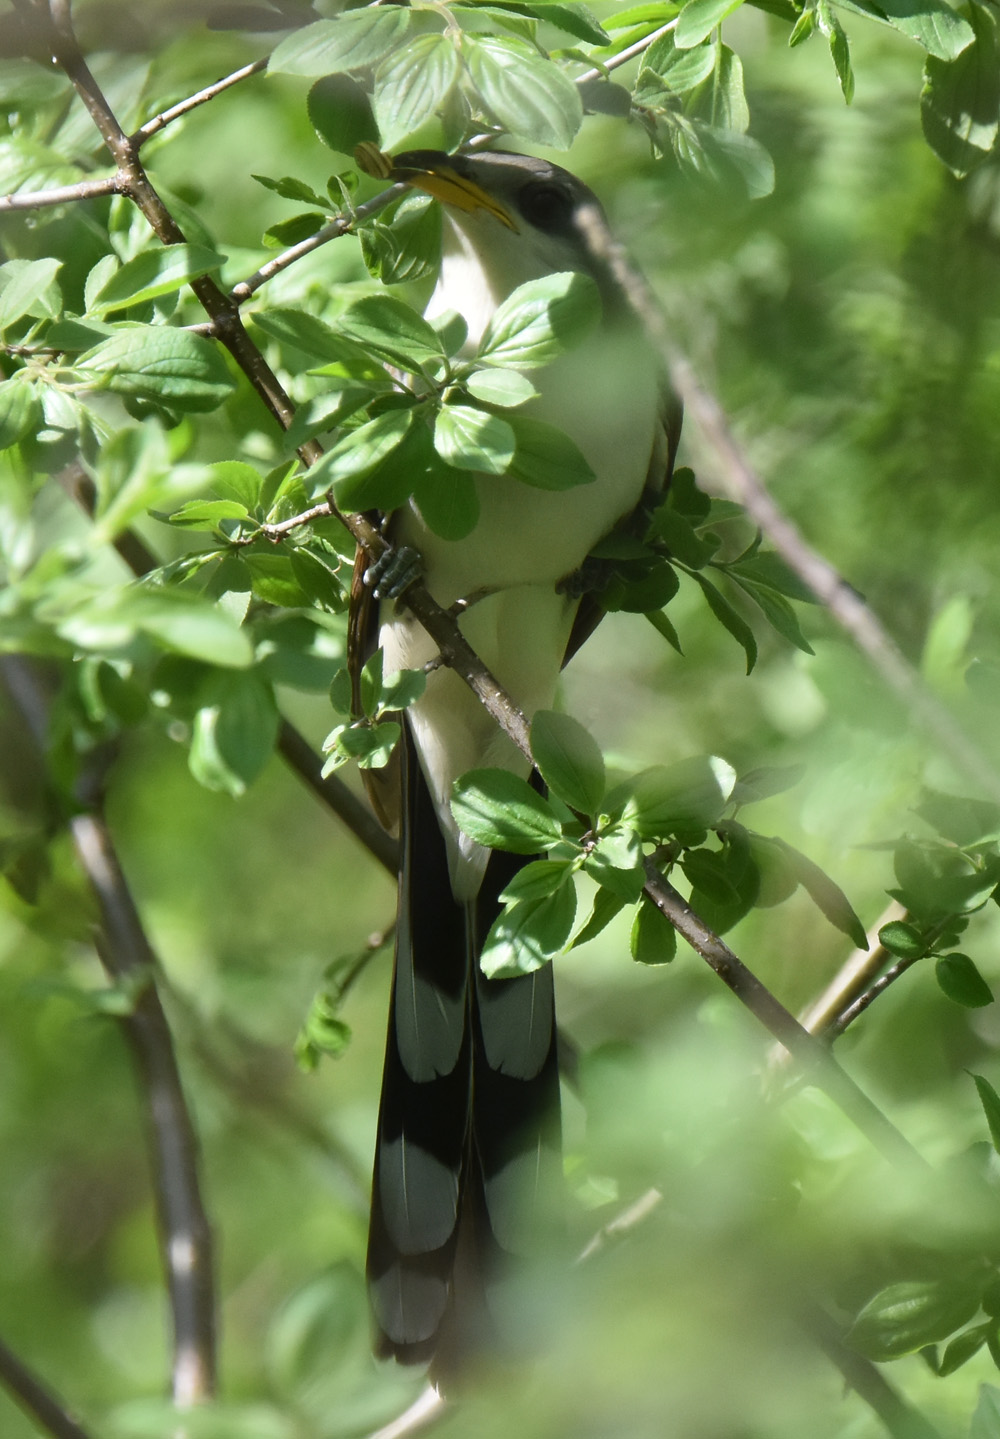 Photo of Yellow Billed Cuckoo Finding What on NaturalCrooksDotCom